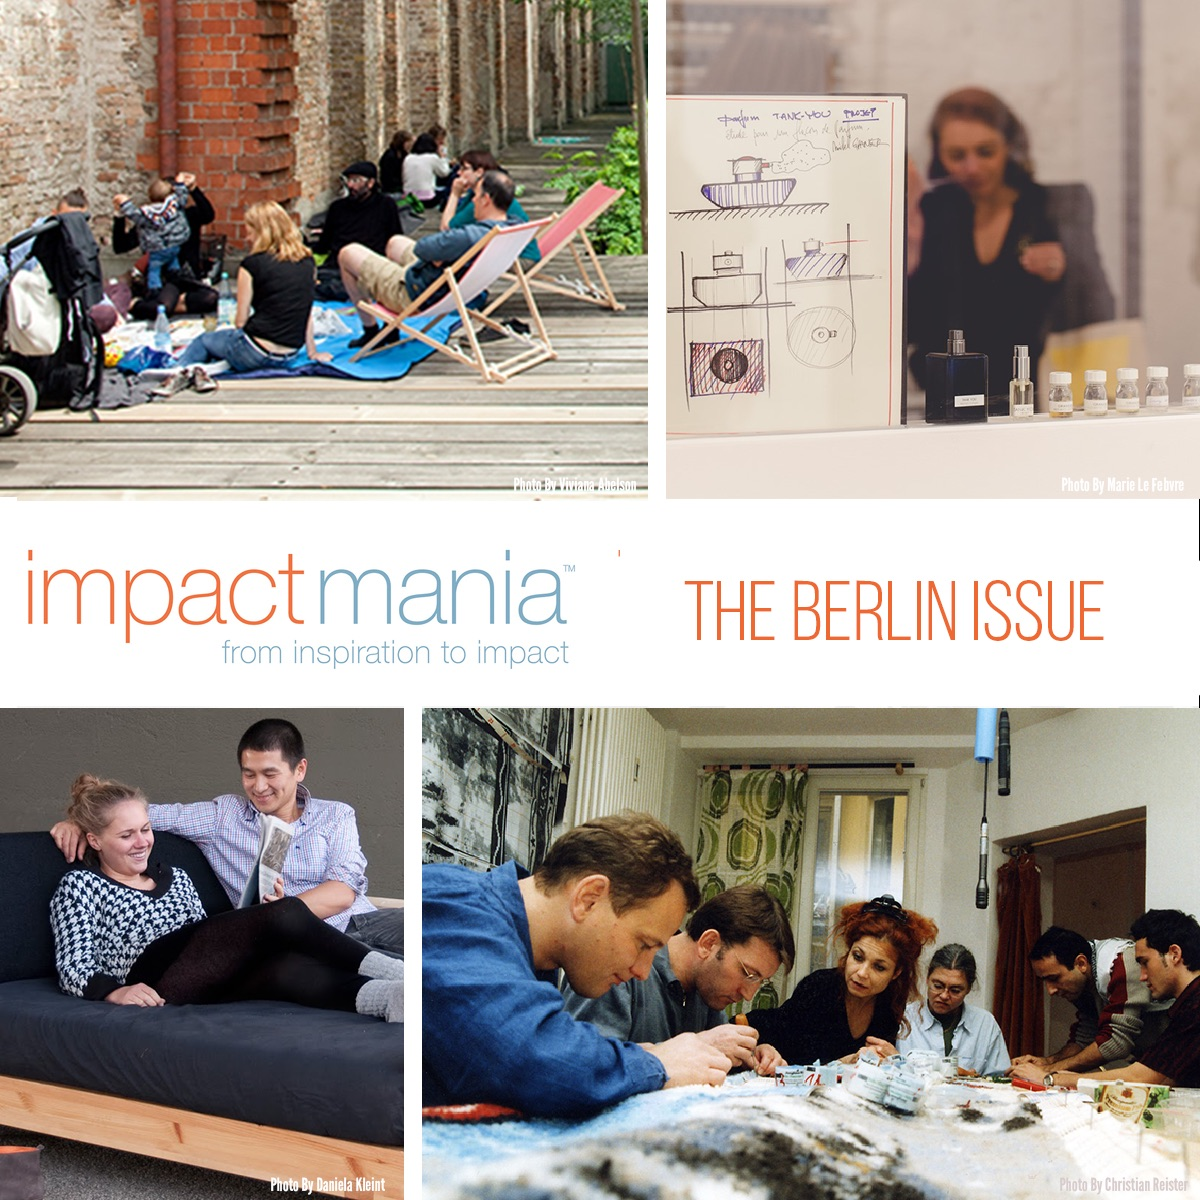 impactmania's Berlin issue is out!